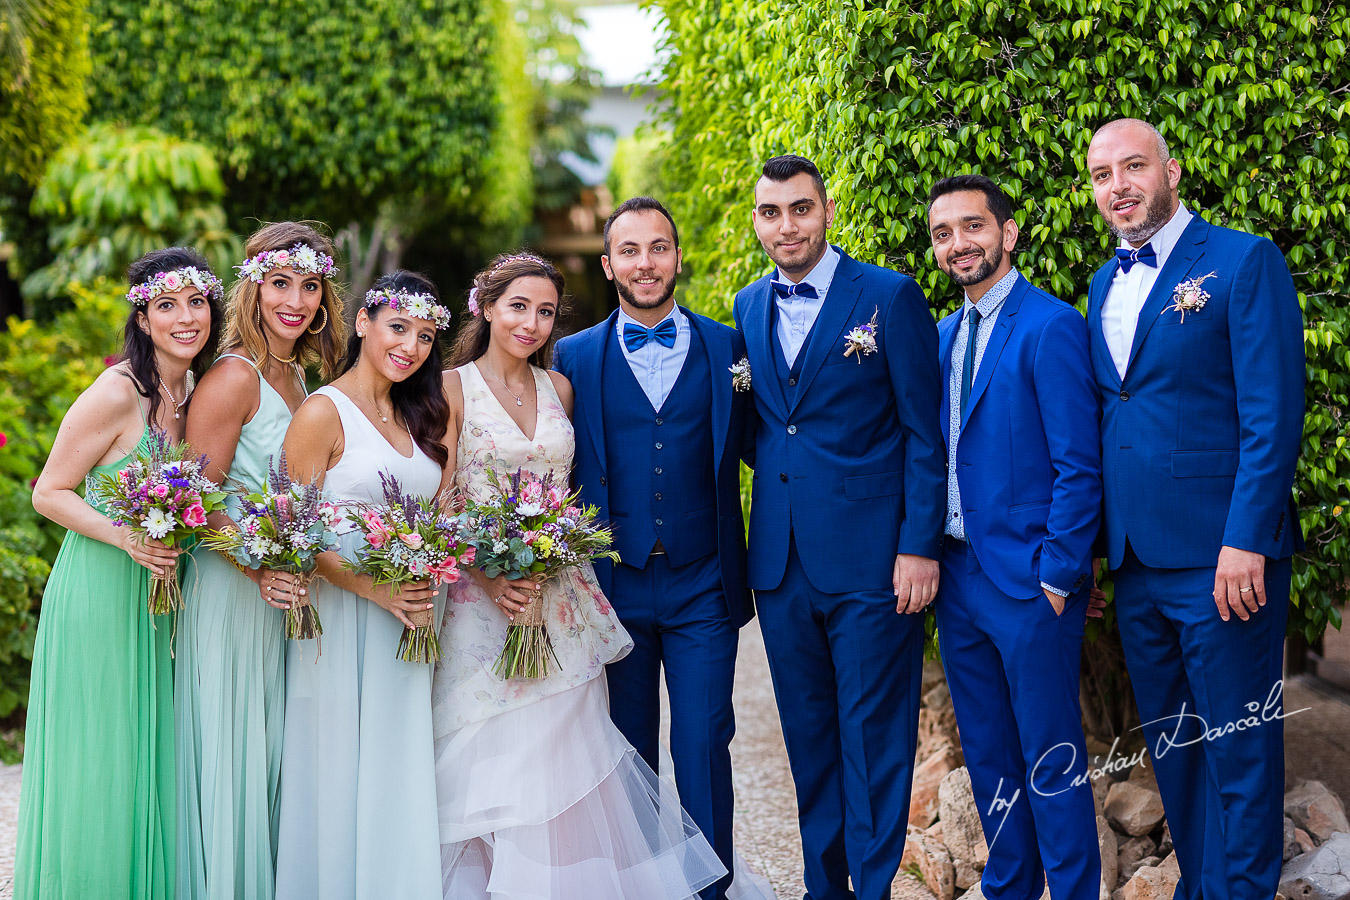 Portrait with the bride and groom and their bridesmaids and groomsmen photographed as part of an Exclusive Wedding photography at Grand Resort Limassol, captured by Cyprus Wedding Photographer Cristian Dascalu.